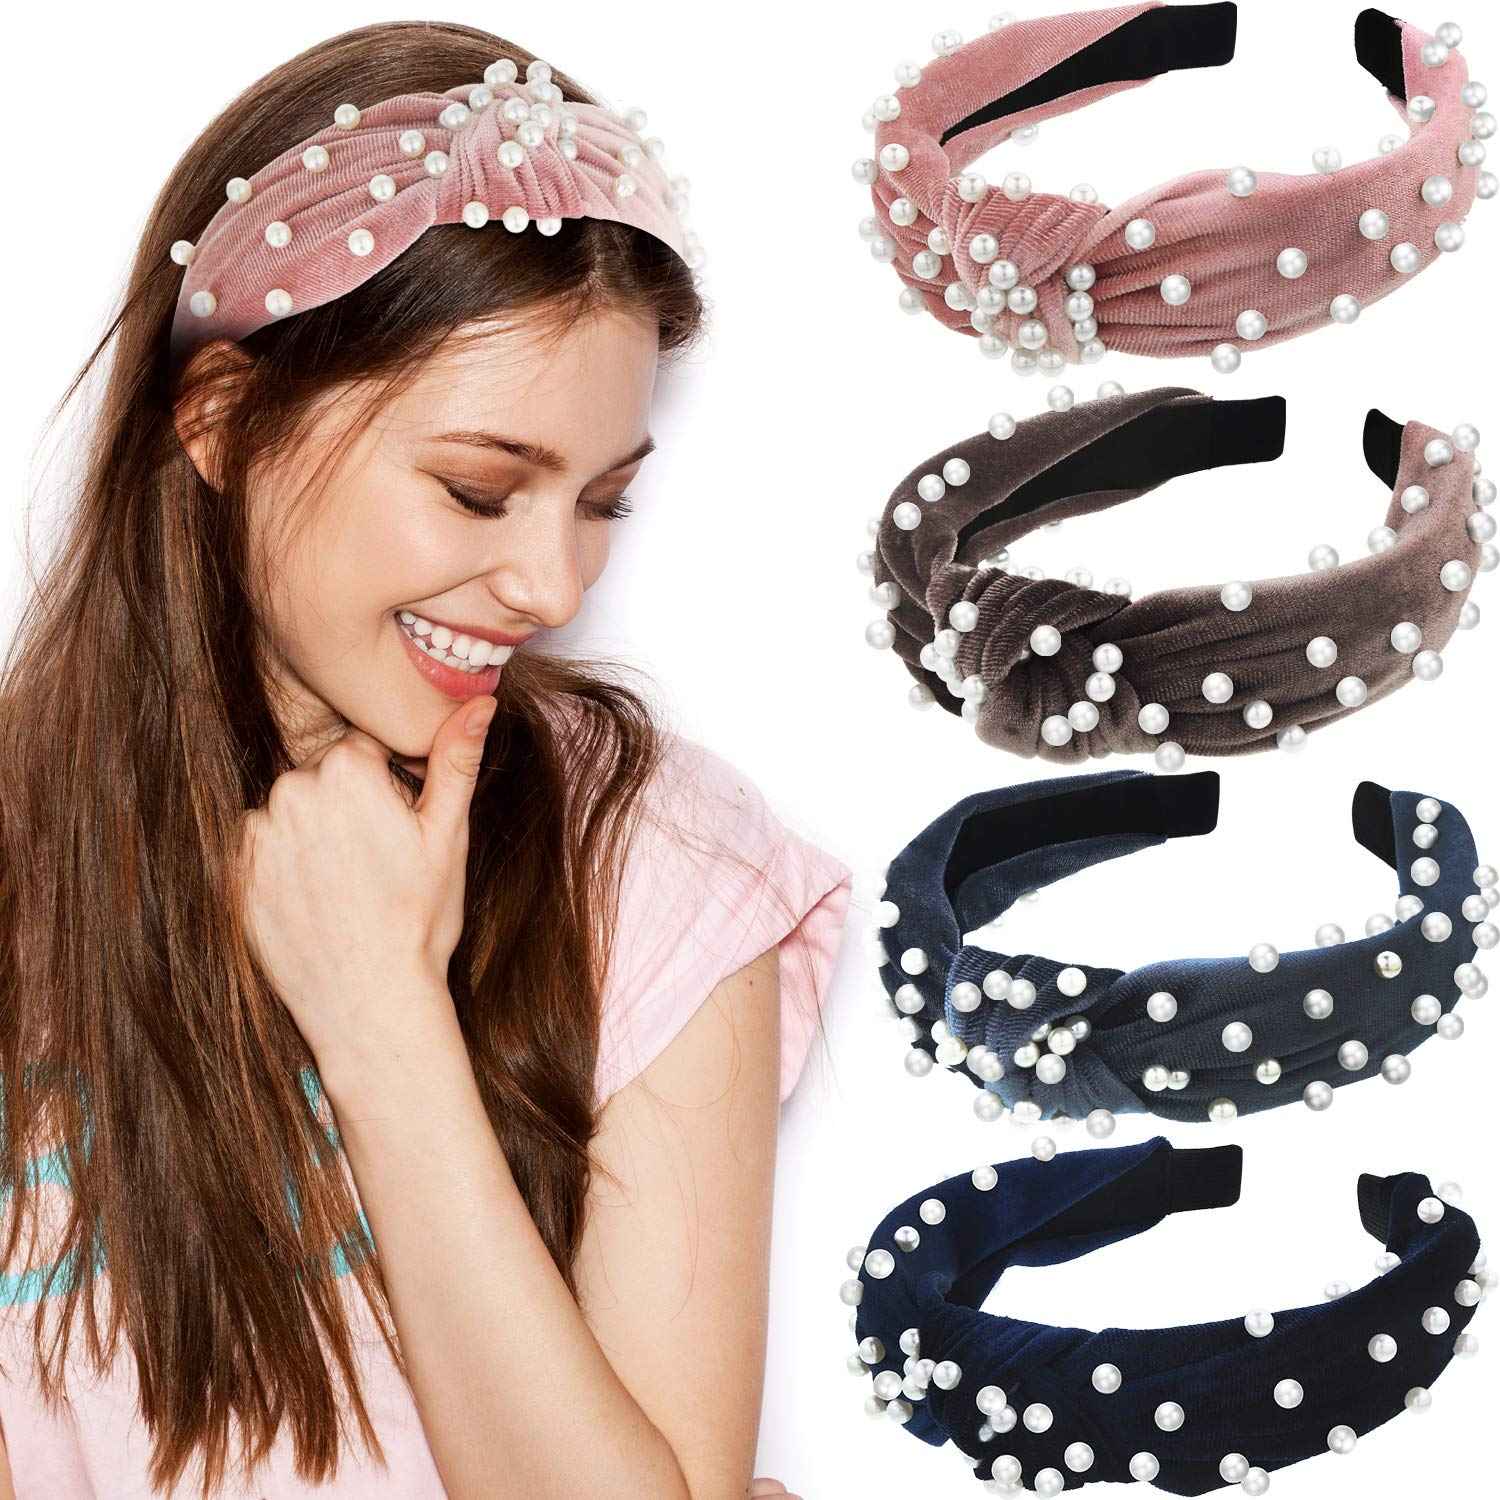 Toothed Headbands